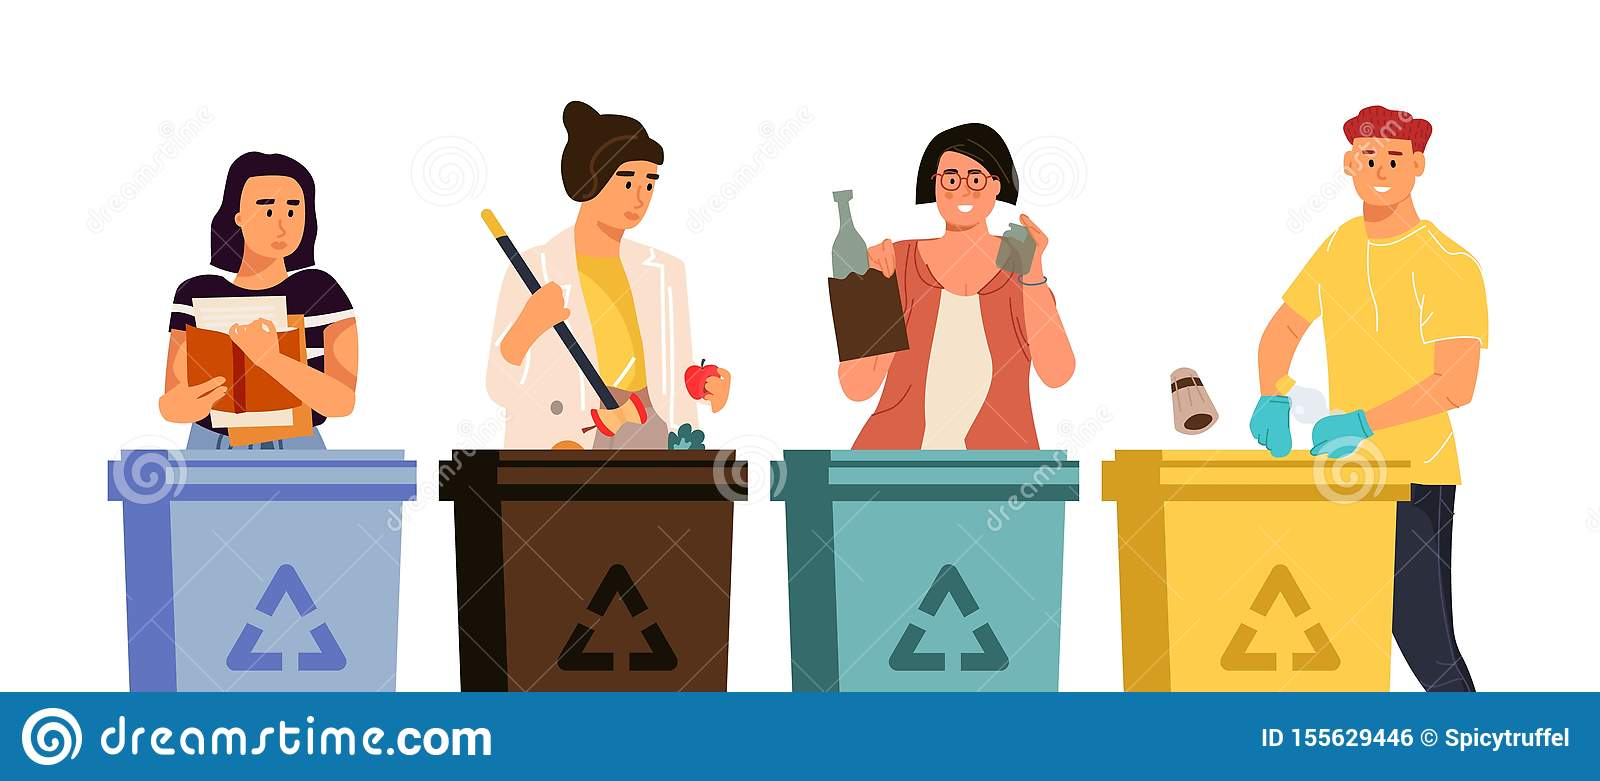 Recycling characters. Cartoon men and women putting trash in different containers, garbage sorting concept. Vector